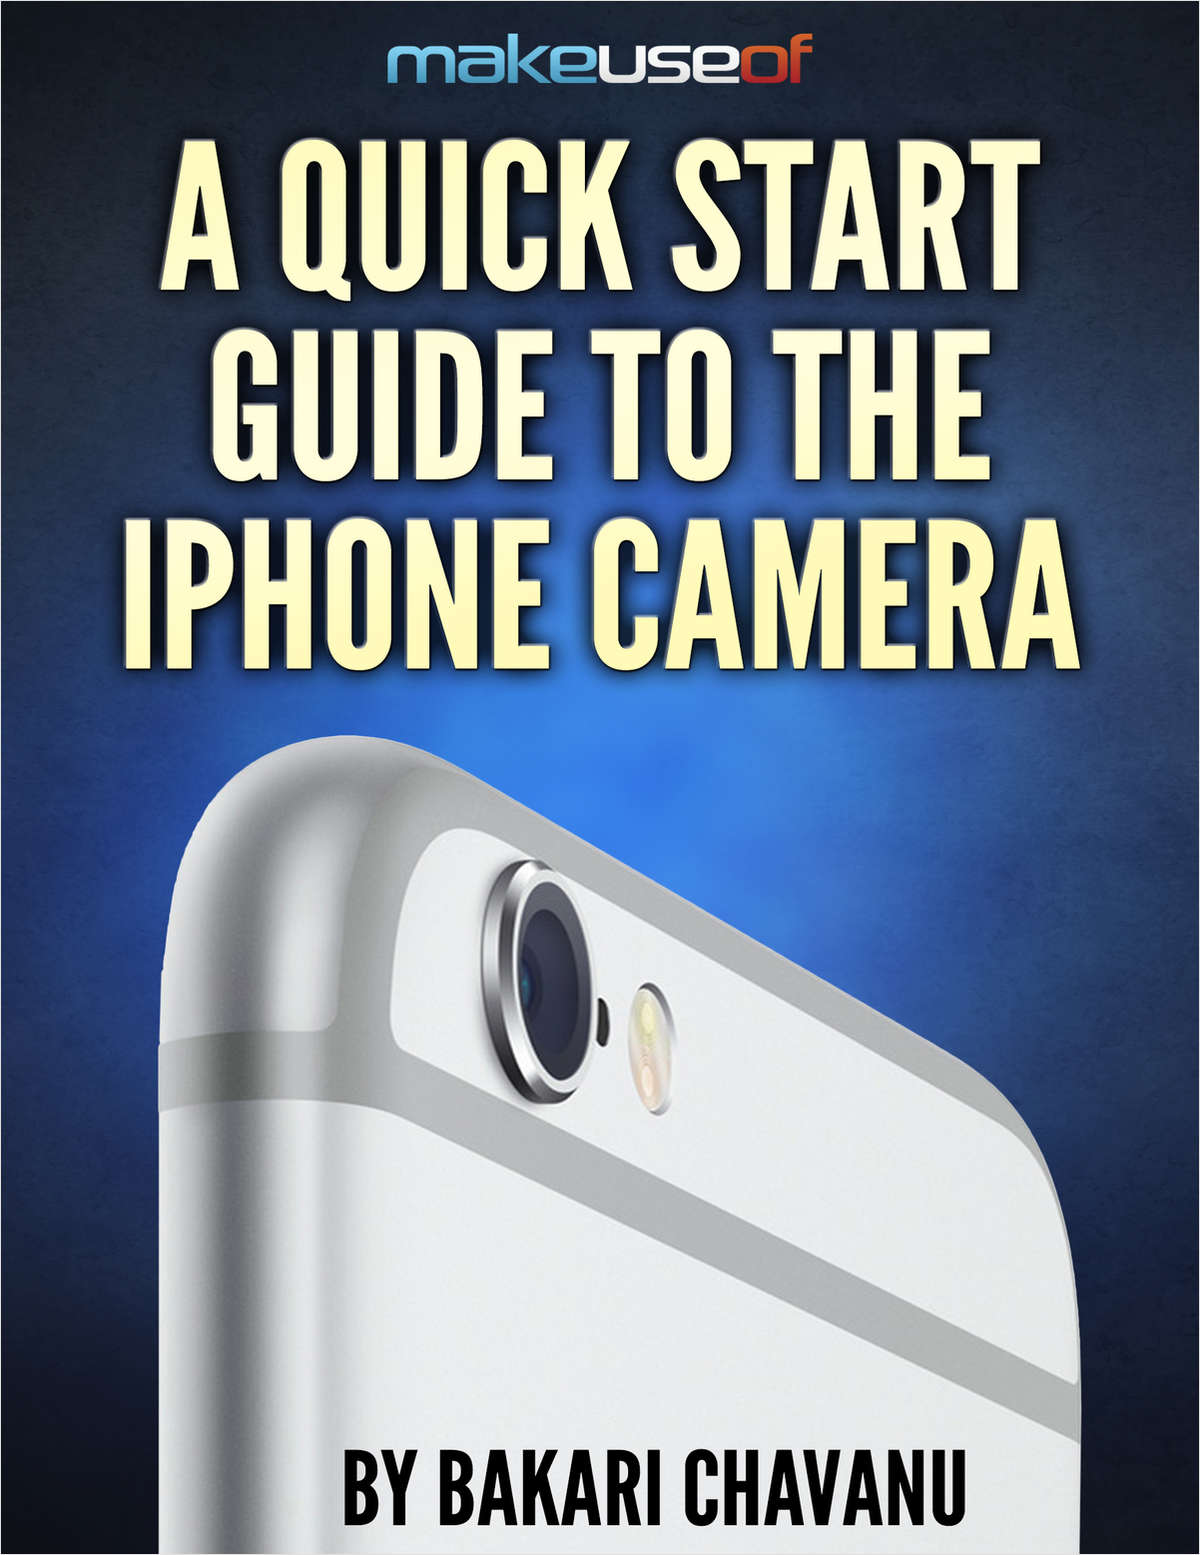 A Quick Start Guide to the iPhone Camera